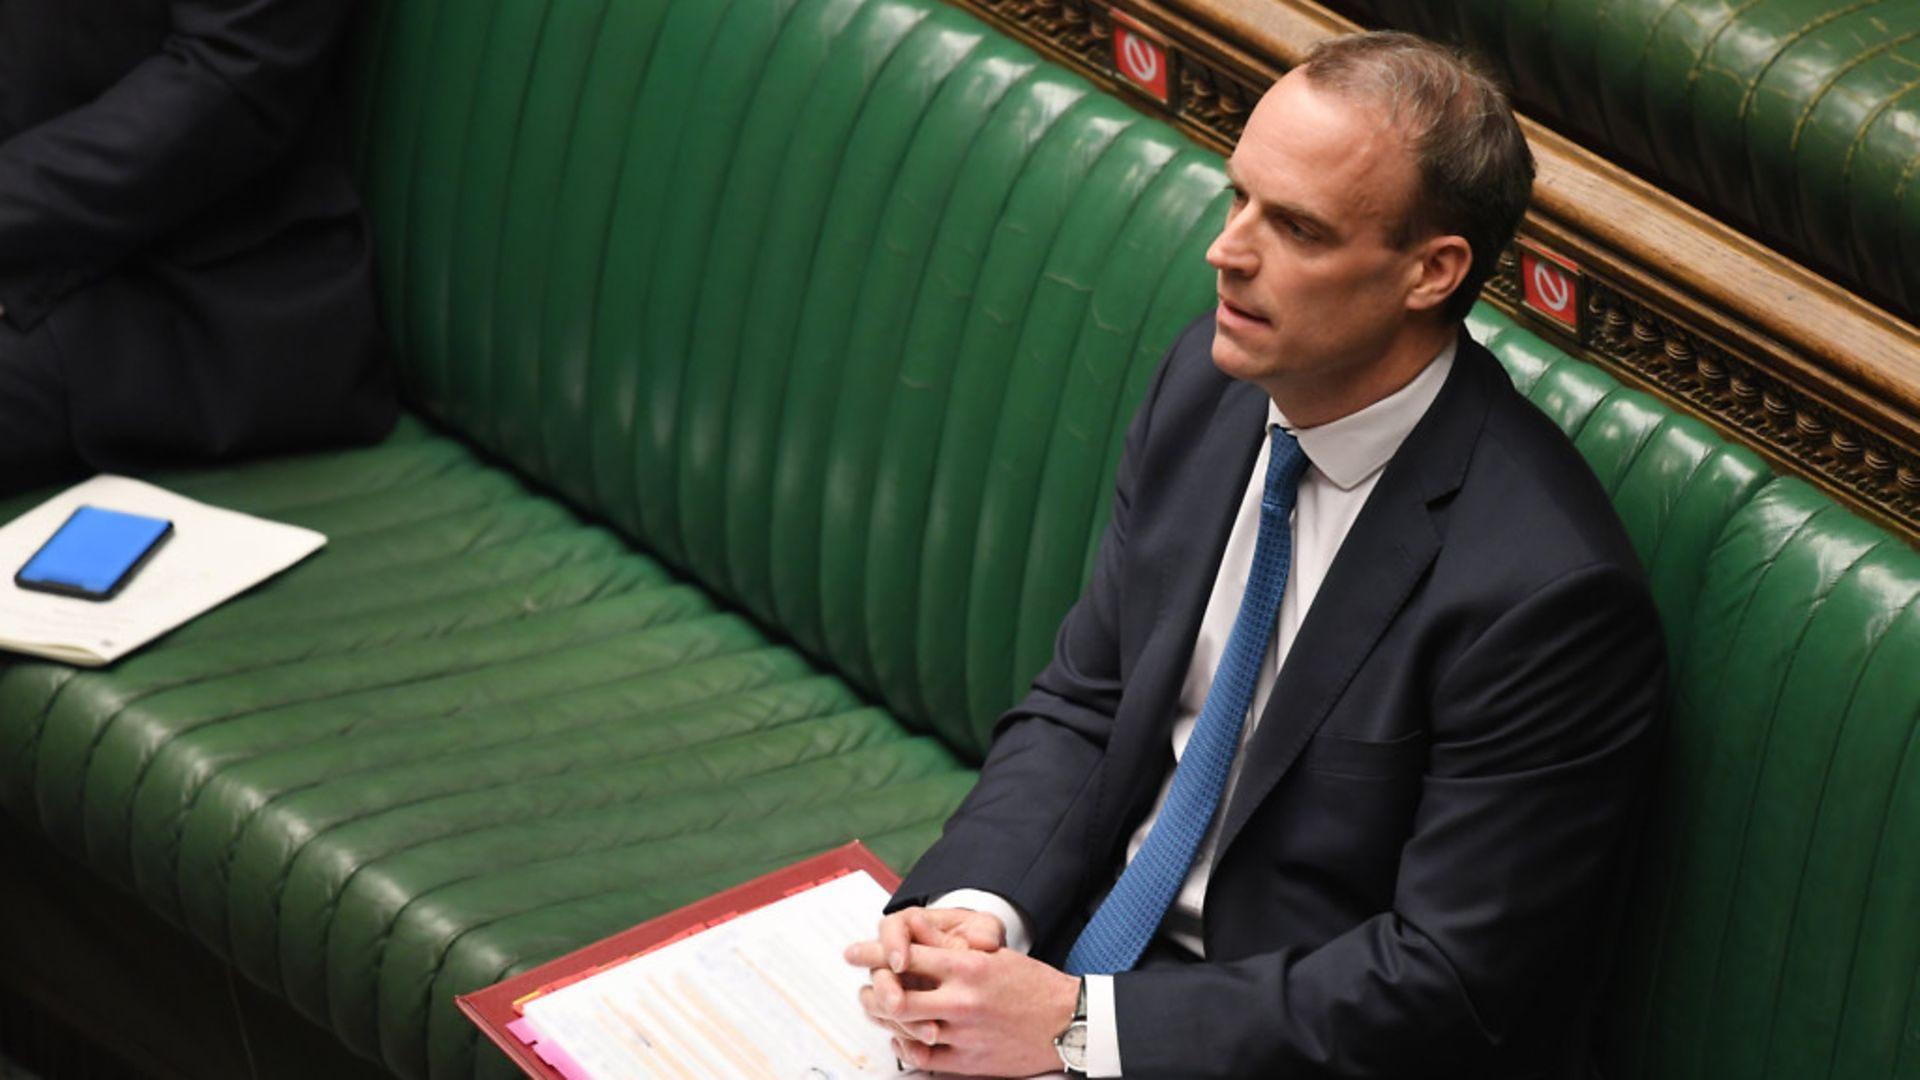 Dominic Raab in the House of Commons - Credit: HOC/JESSICA TAYLOR